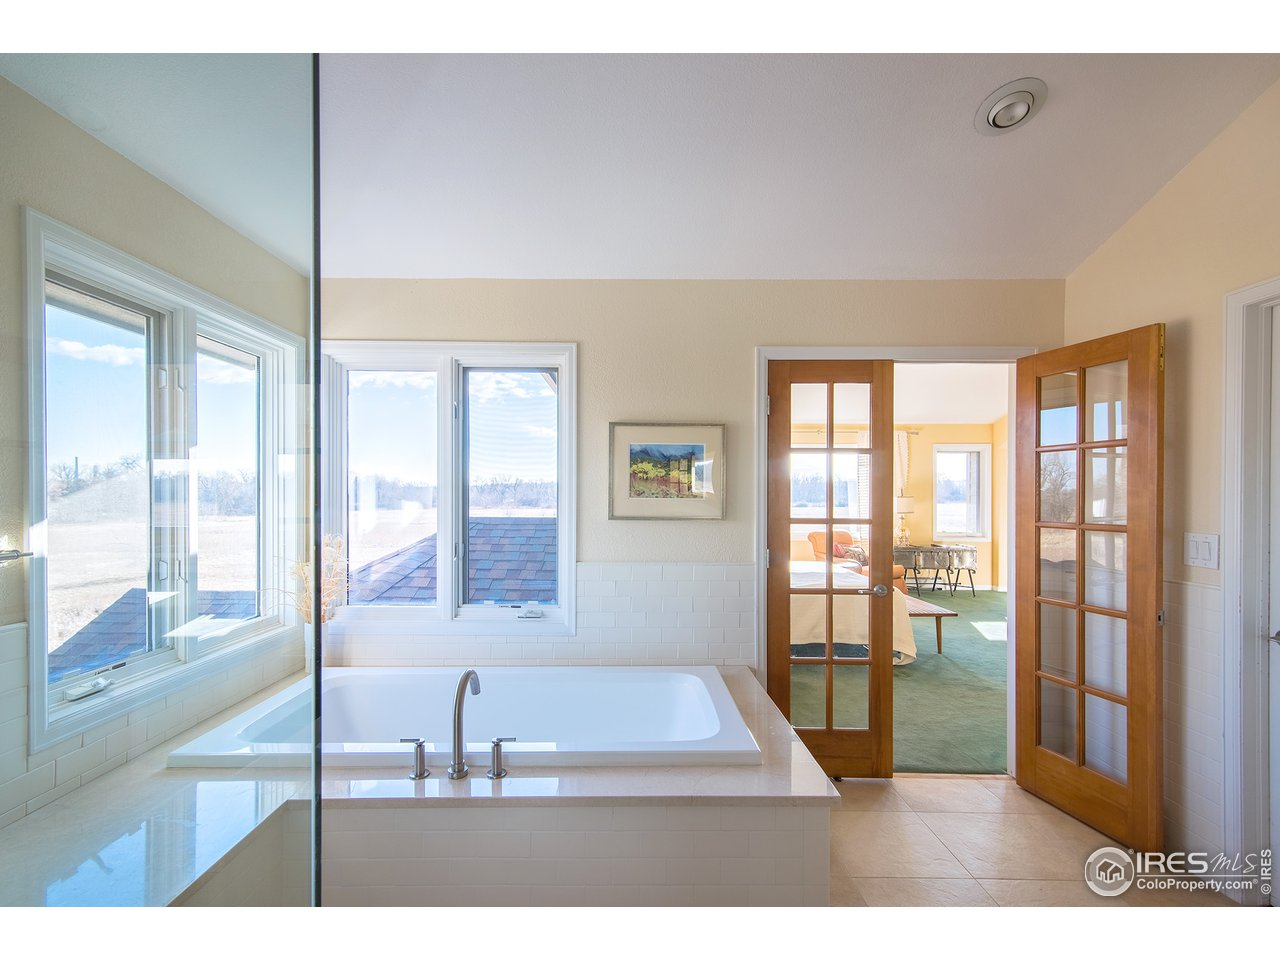 steam shower/soaking tub & heated floors!